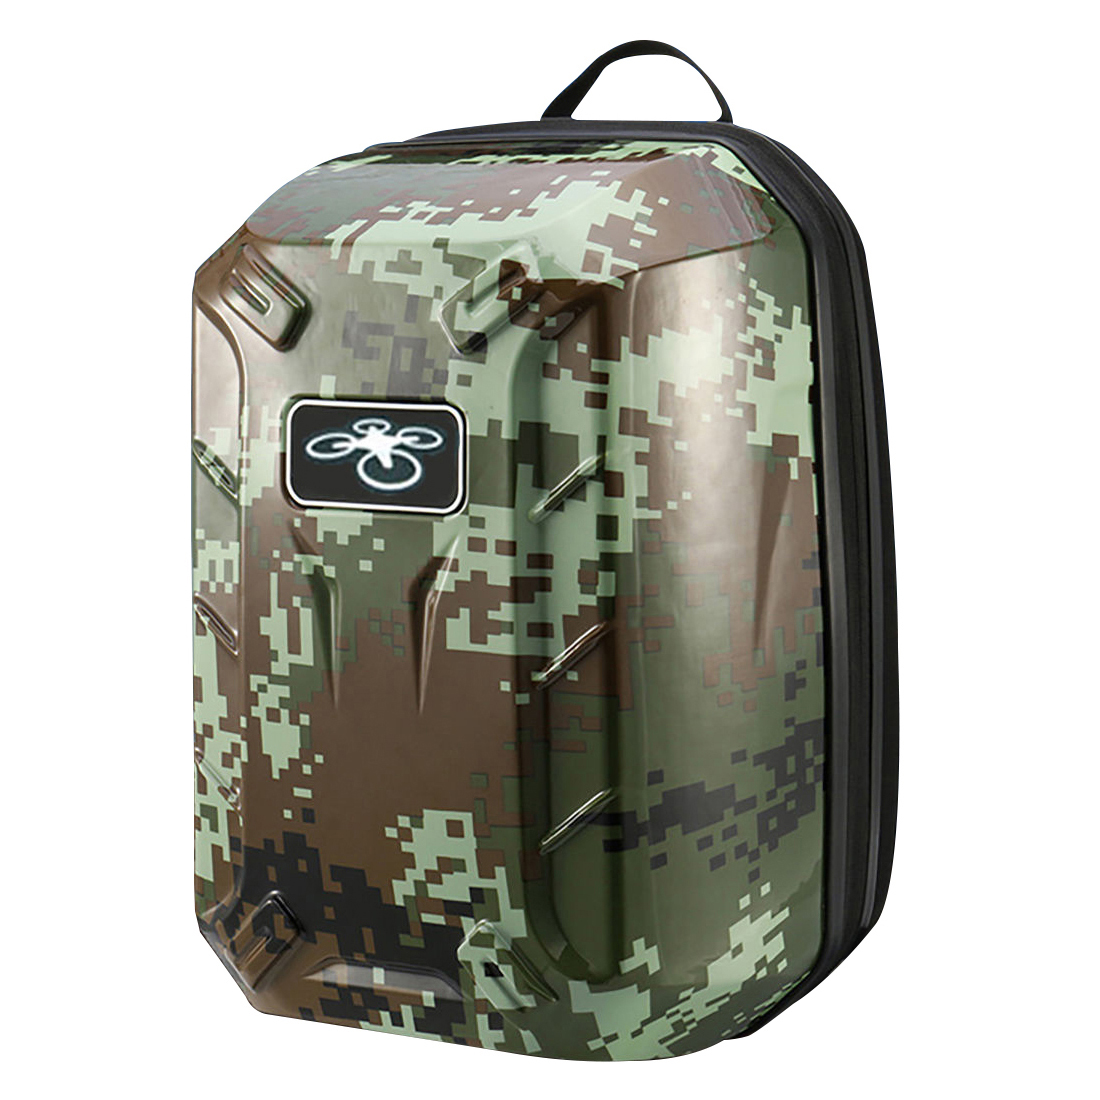 VSEN Traveling Waterproof Backpack Shoulder Bag Hard Shell Case For DJI Phantom 3Color:Army green vsen traveling waterproof backpack shoulder bag hard shell case for dji phantom 3color army green